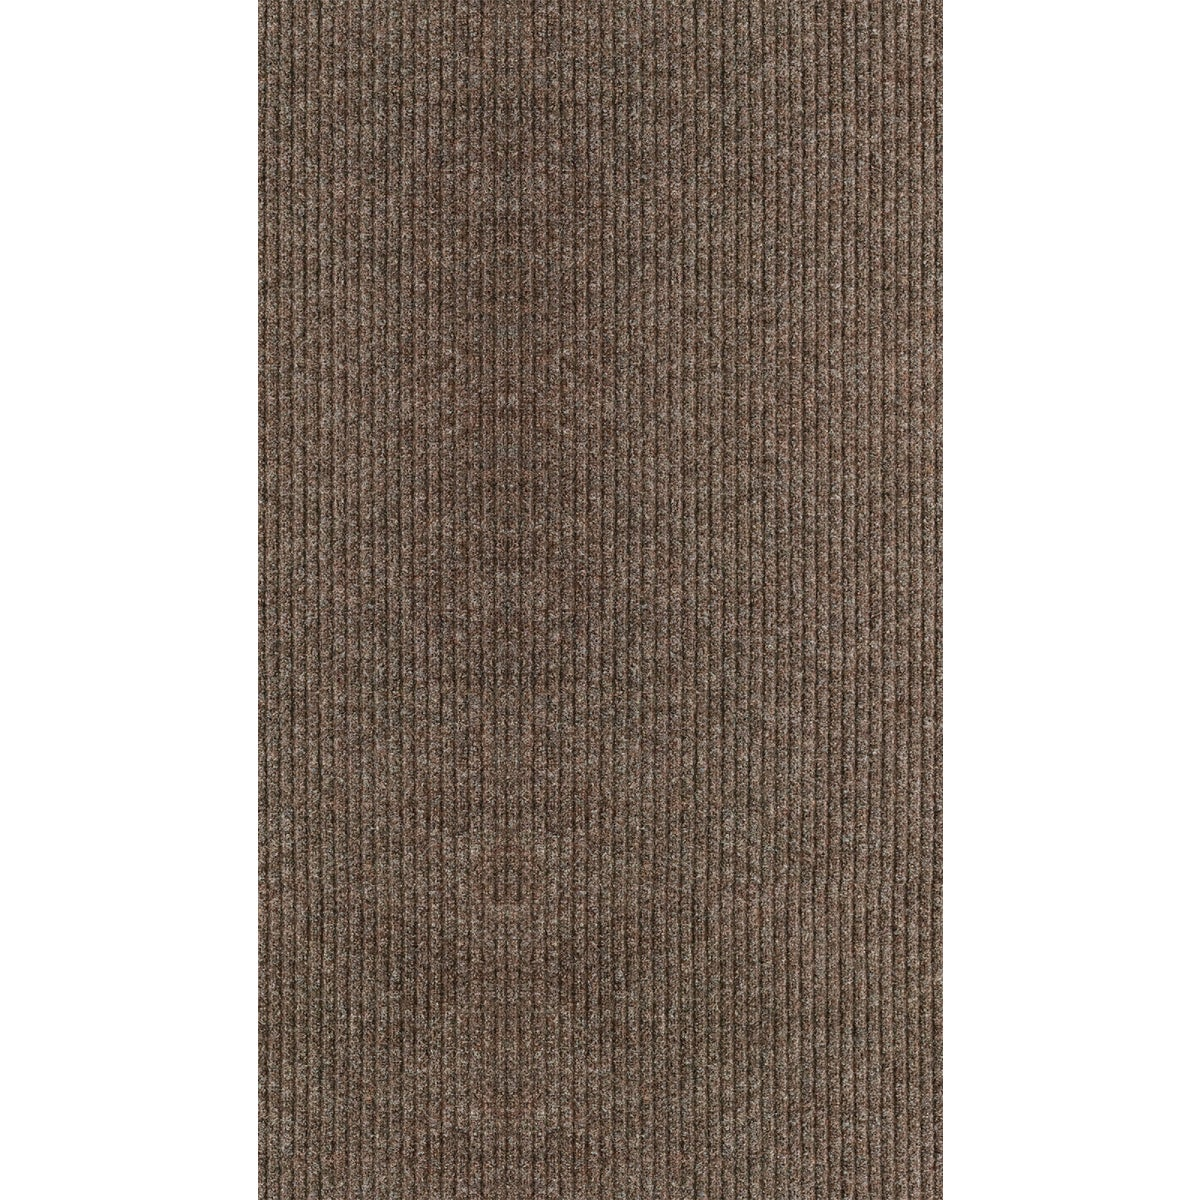 "26""X100' CARPET RUNNER - HRA0027 by Dennis W J & Co"